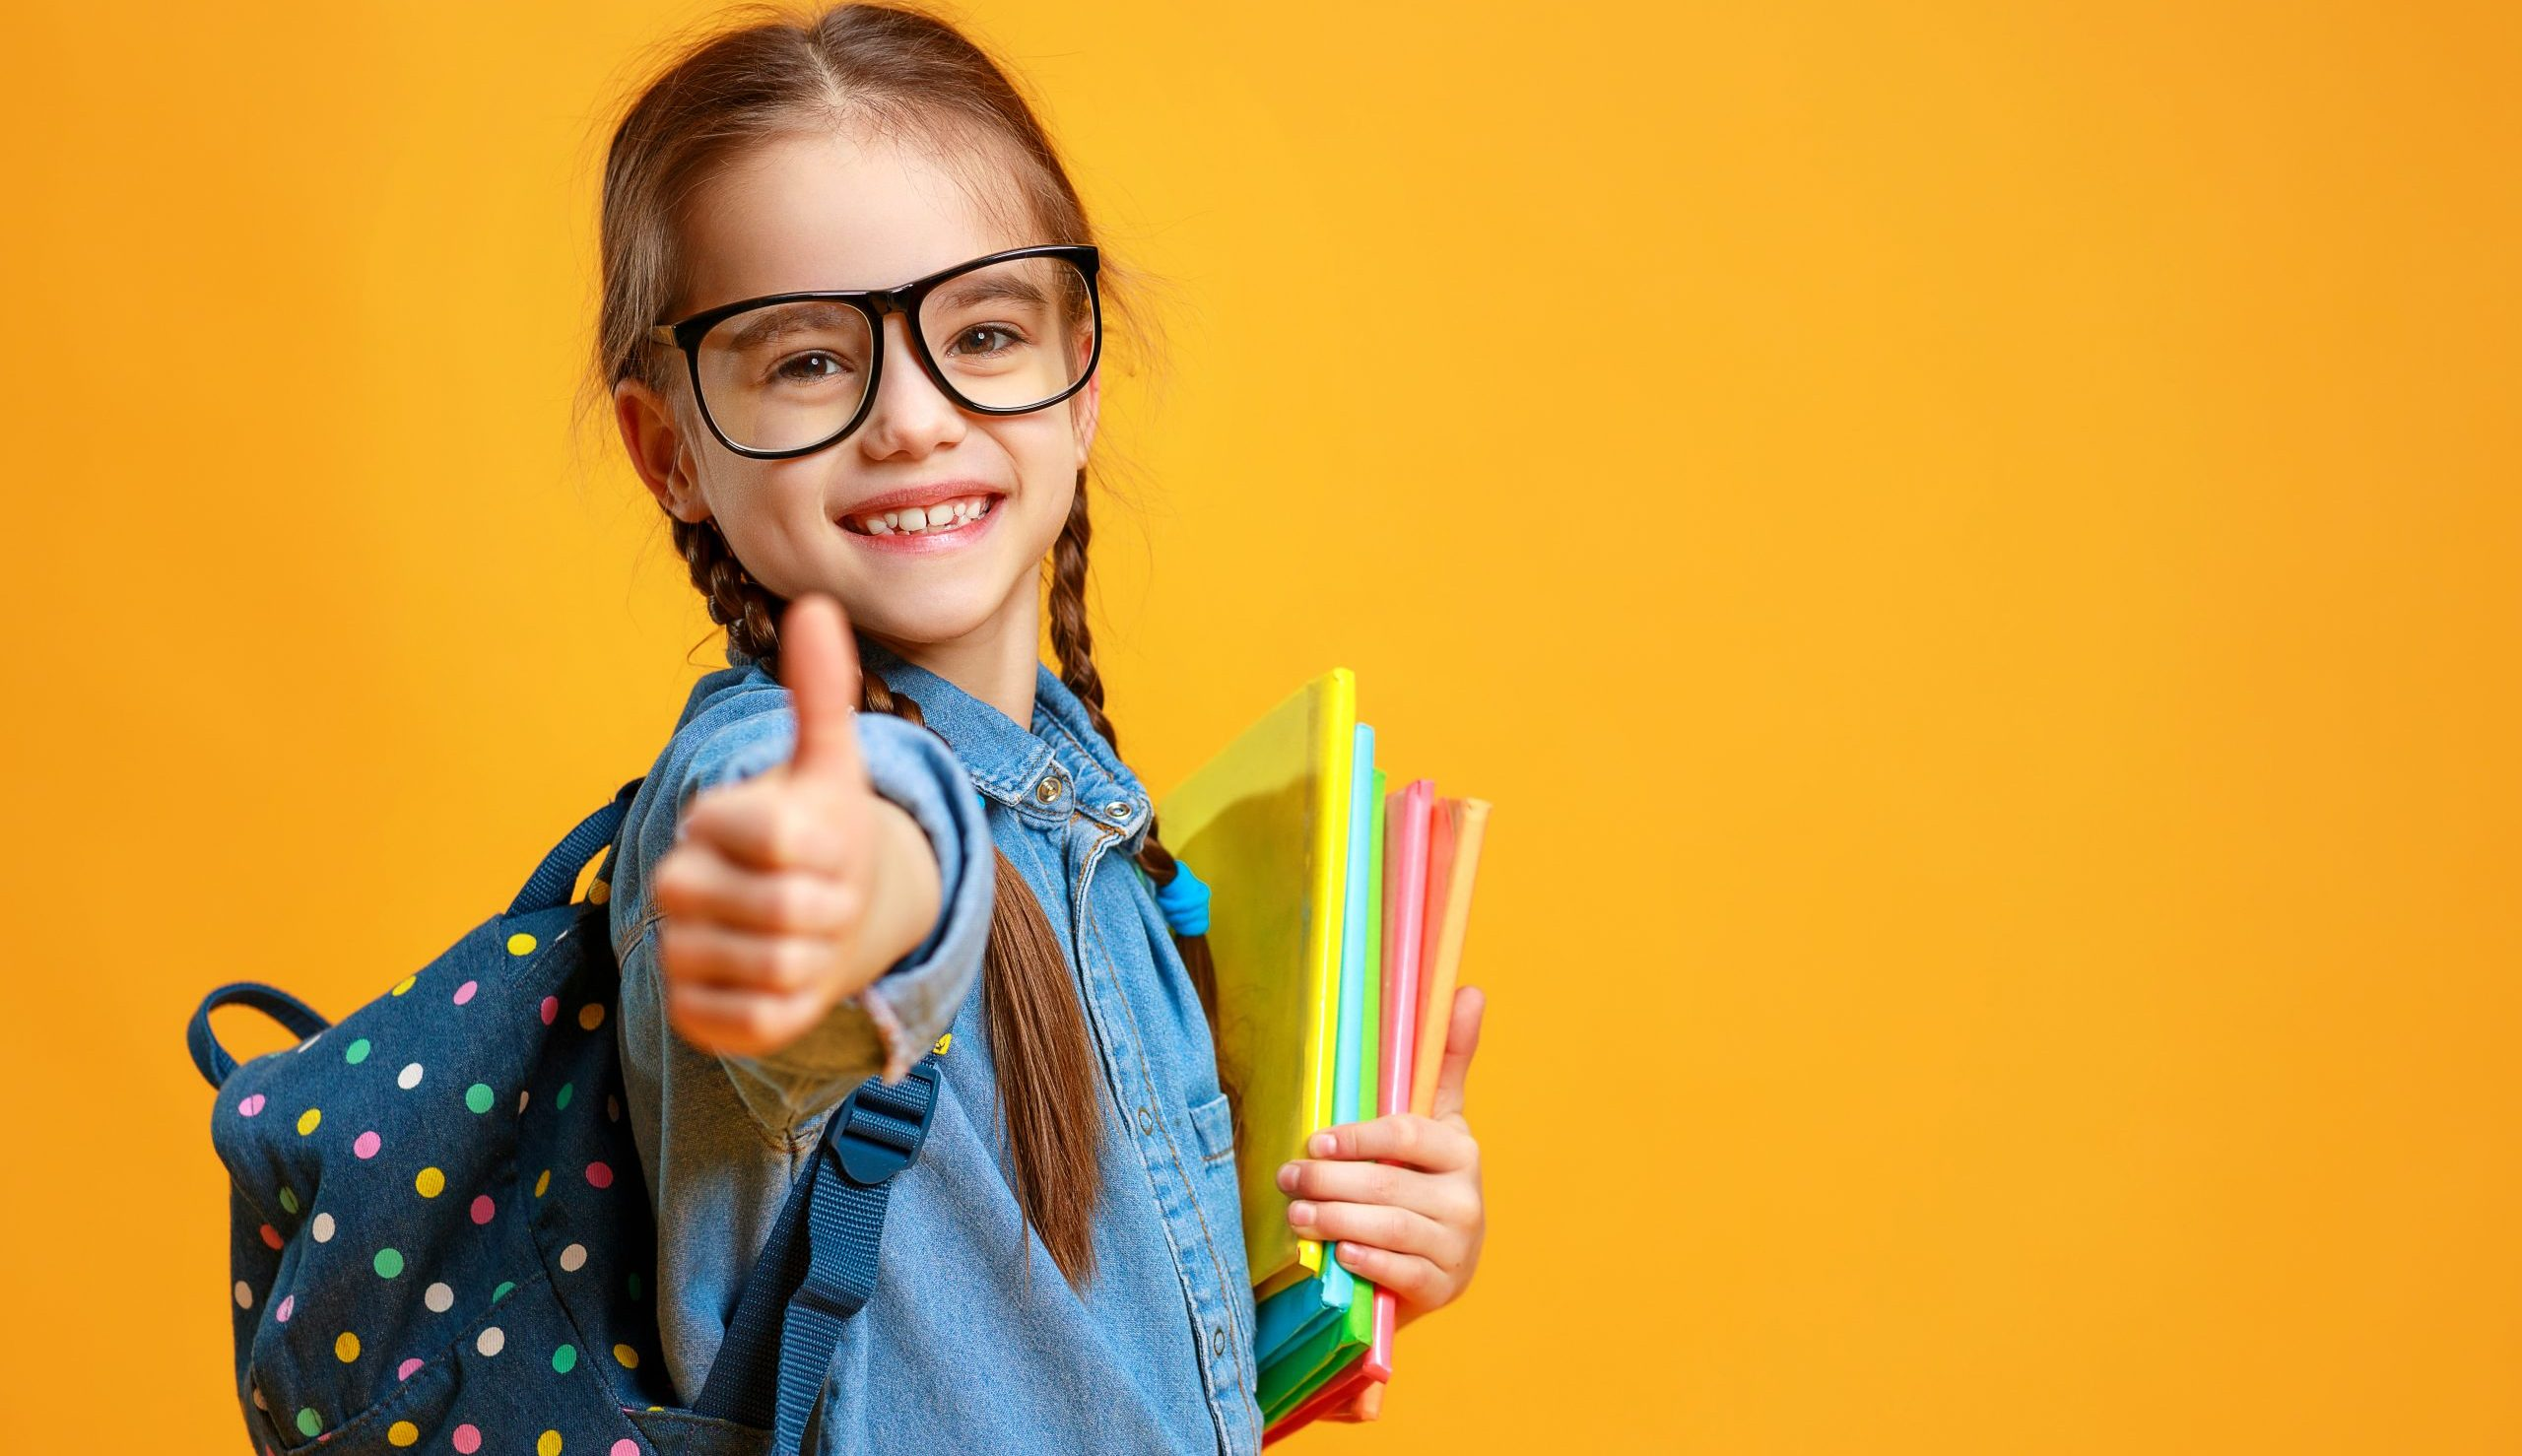 Child giving thumbs up with packback on ready to go back to school